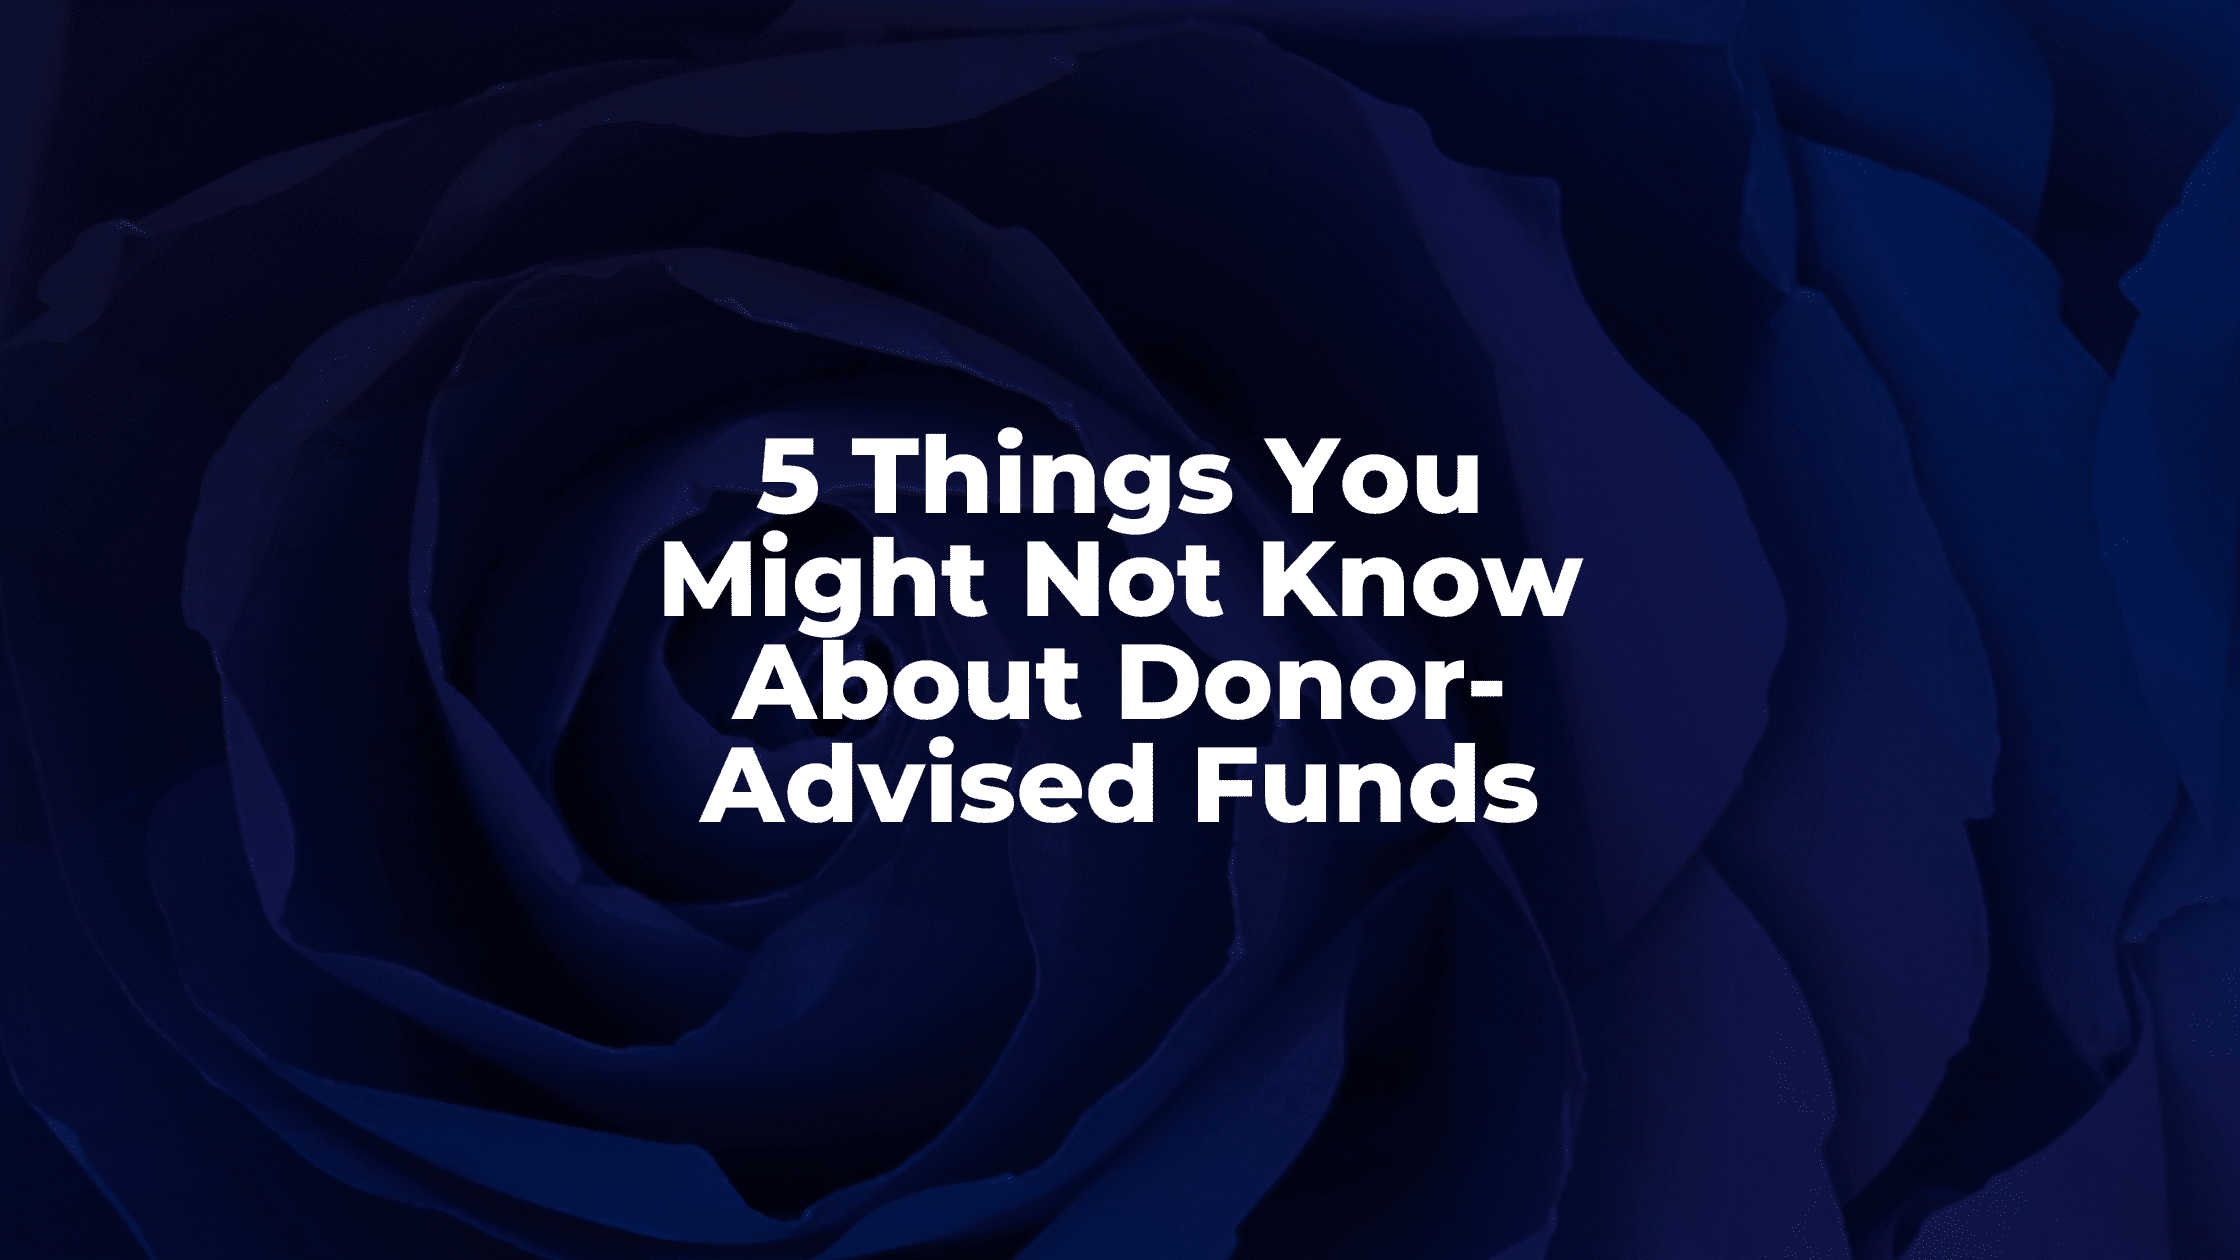 5 Things You Might Not Know About Donor-Advised Funds